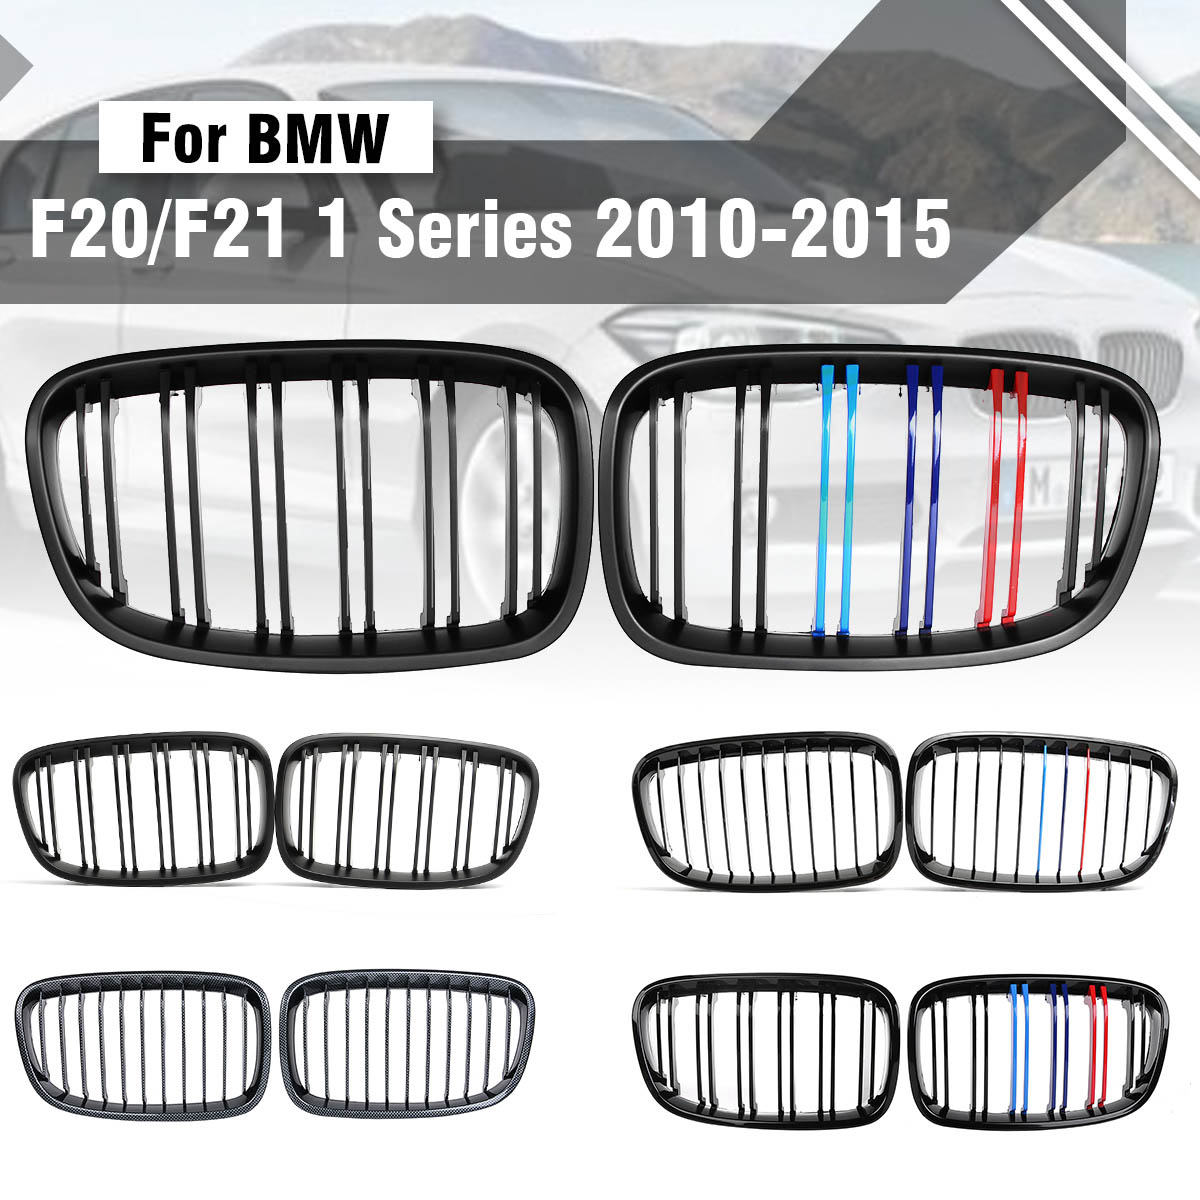 for BMW F20 F21 1 Series 2012 2013 2014 2015 Pair ABS Replacement Matt Gloss Black M Front Kidney Grille Grill Double Line Slat pair gloss matt black m color 2 line front kidney grille grill double slat for bmw e90 e91 3 series 2004 2005 2006 2007